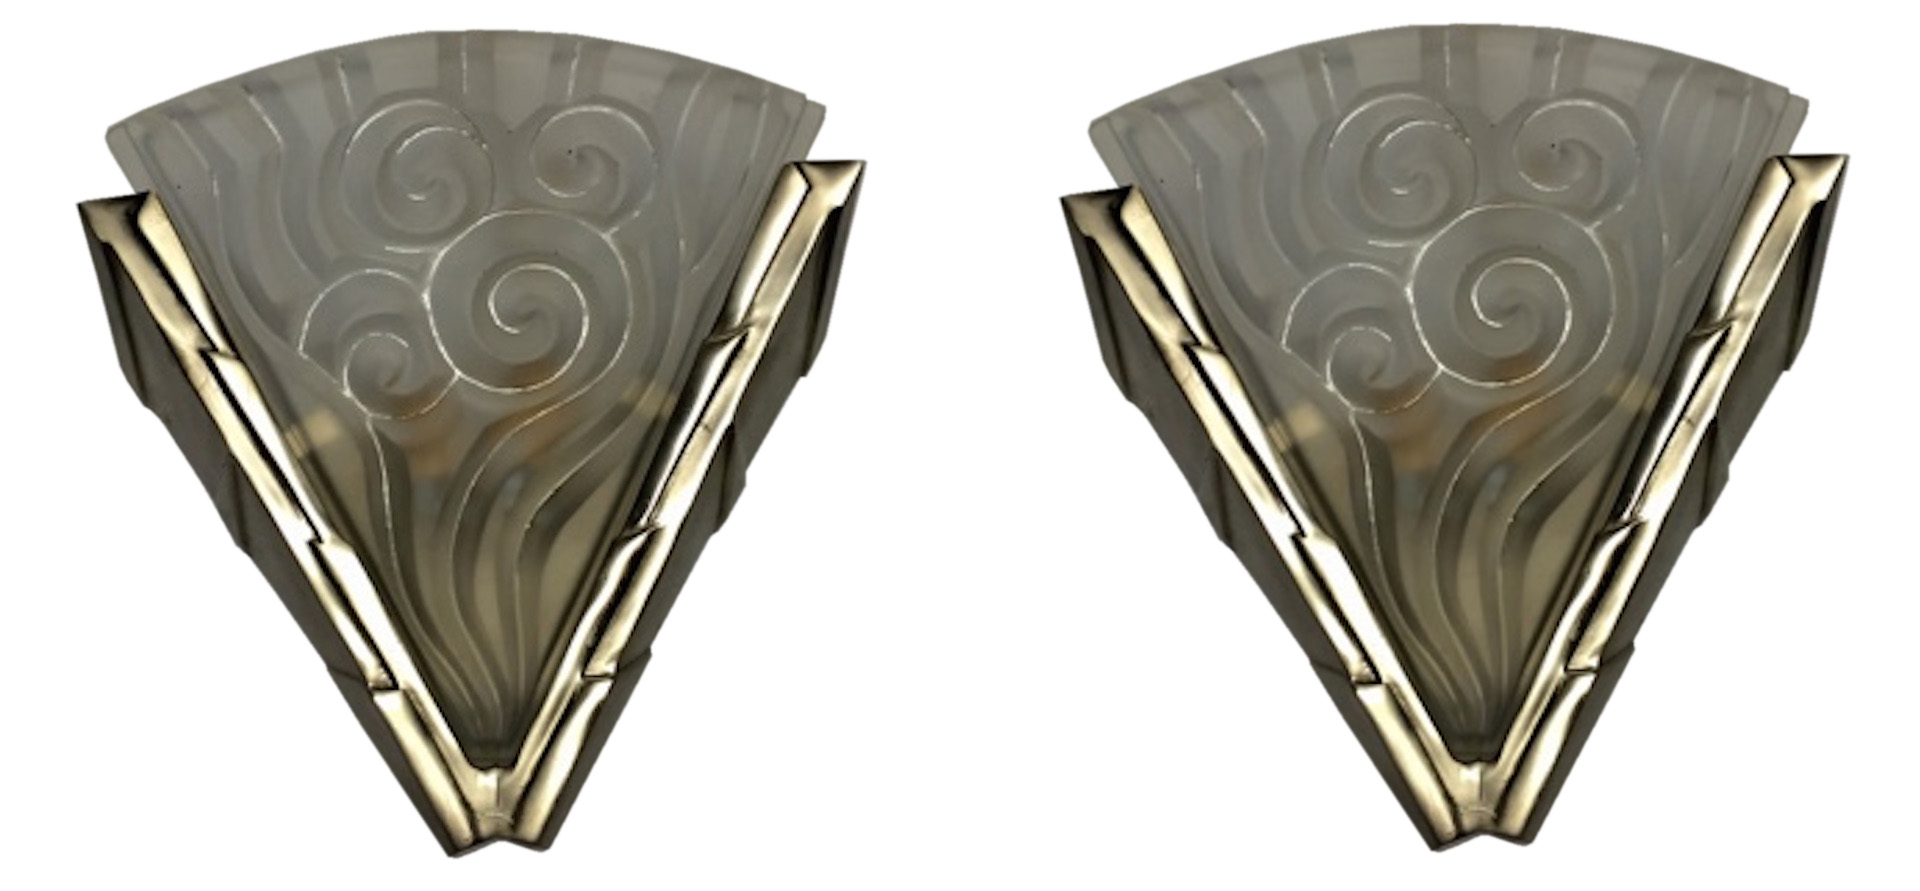 Pair French Art Deco Wall Sconces By Degue